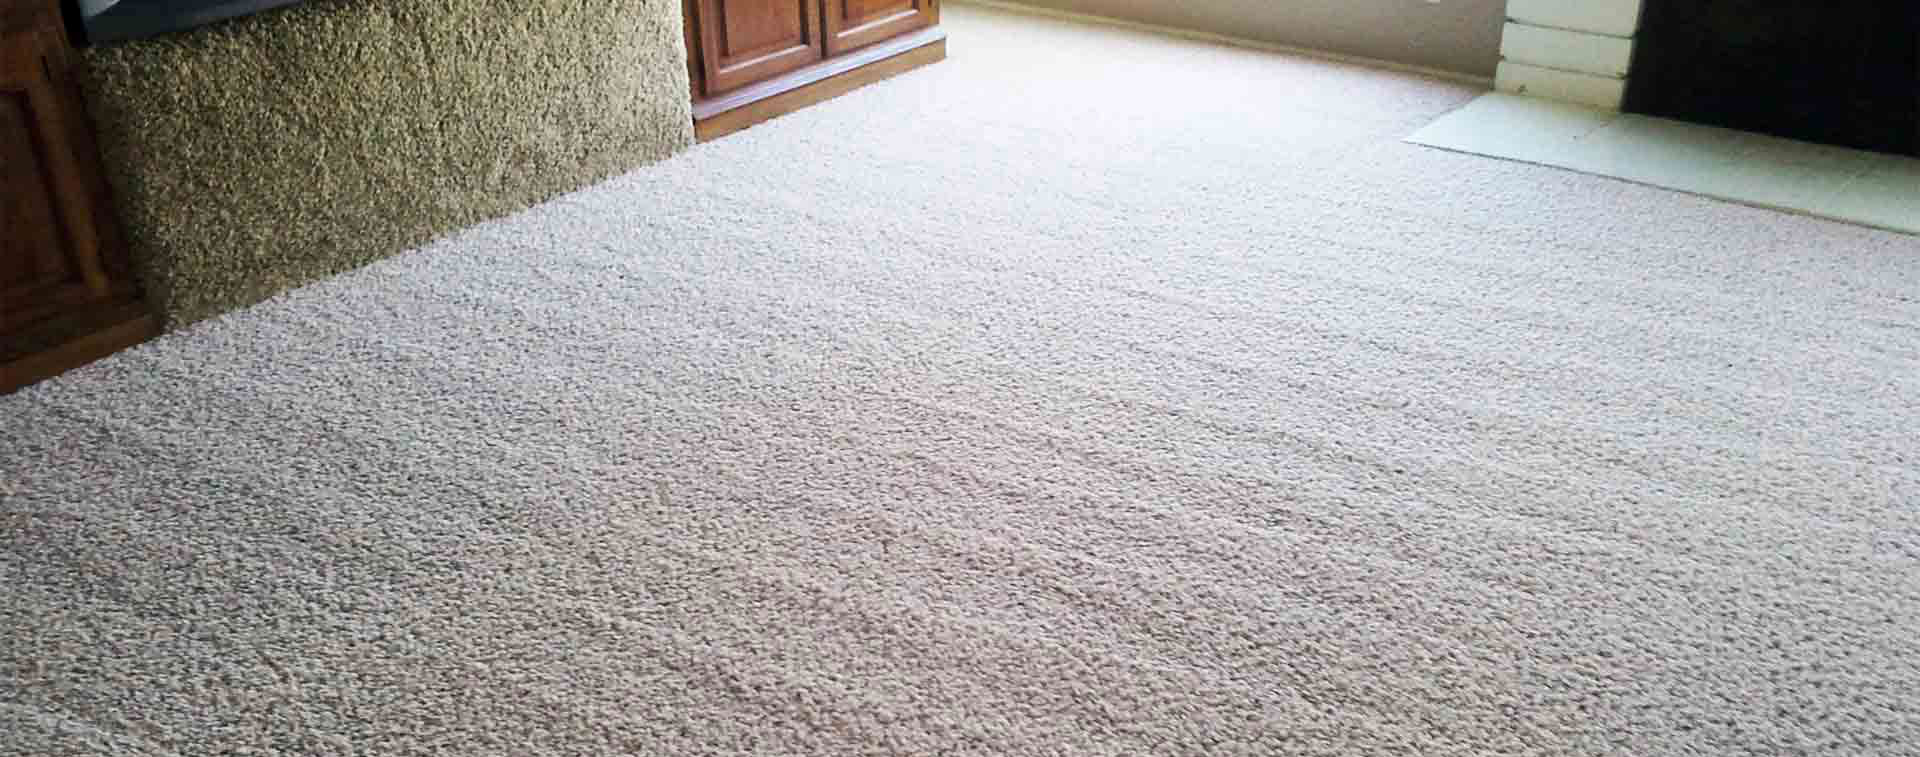 Carpet Cleaning Thornleigh